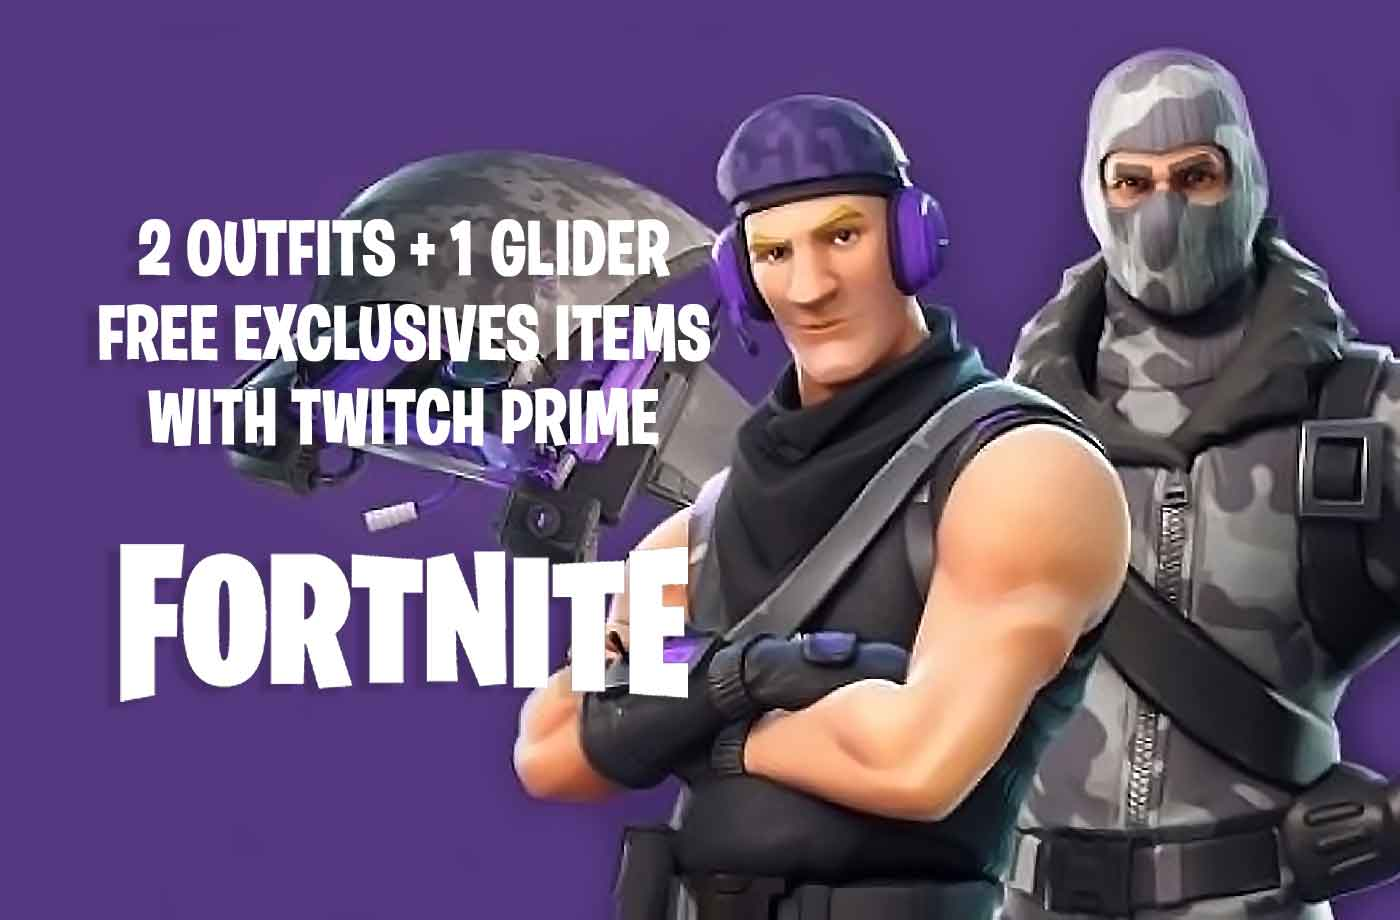 fortnite twitch prime guide how to get the new free skins outfits and glider of season 3 - fortnite free rewards